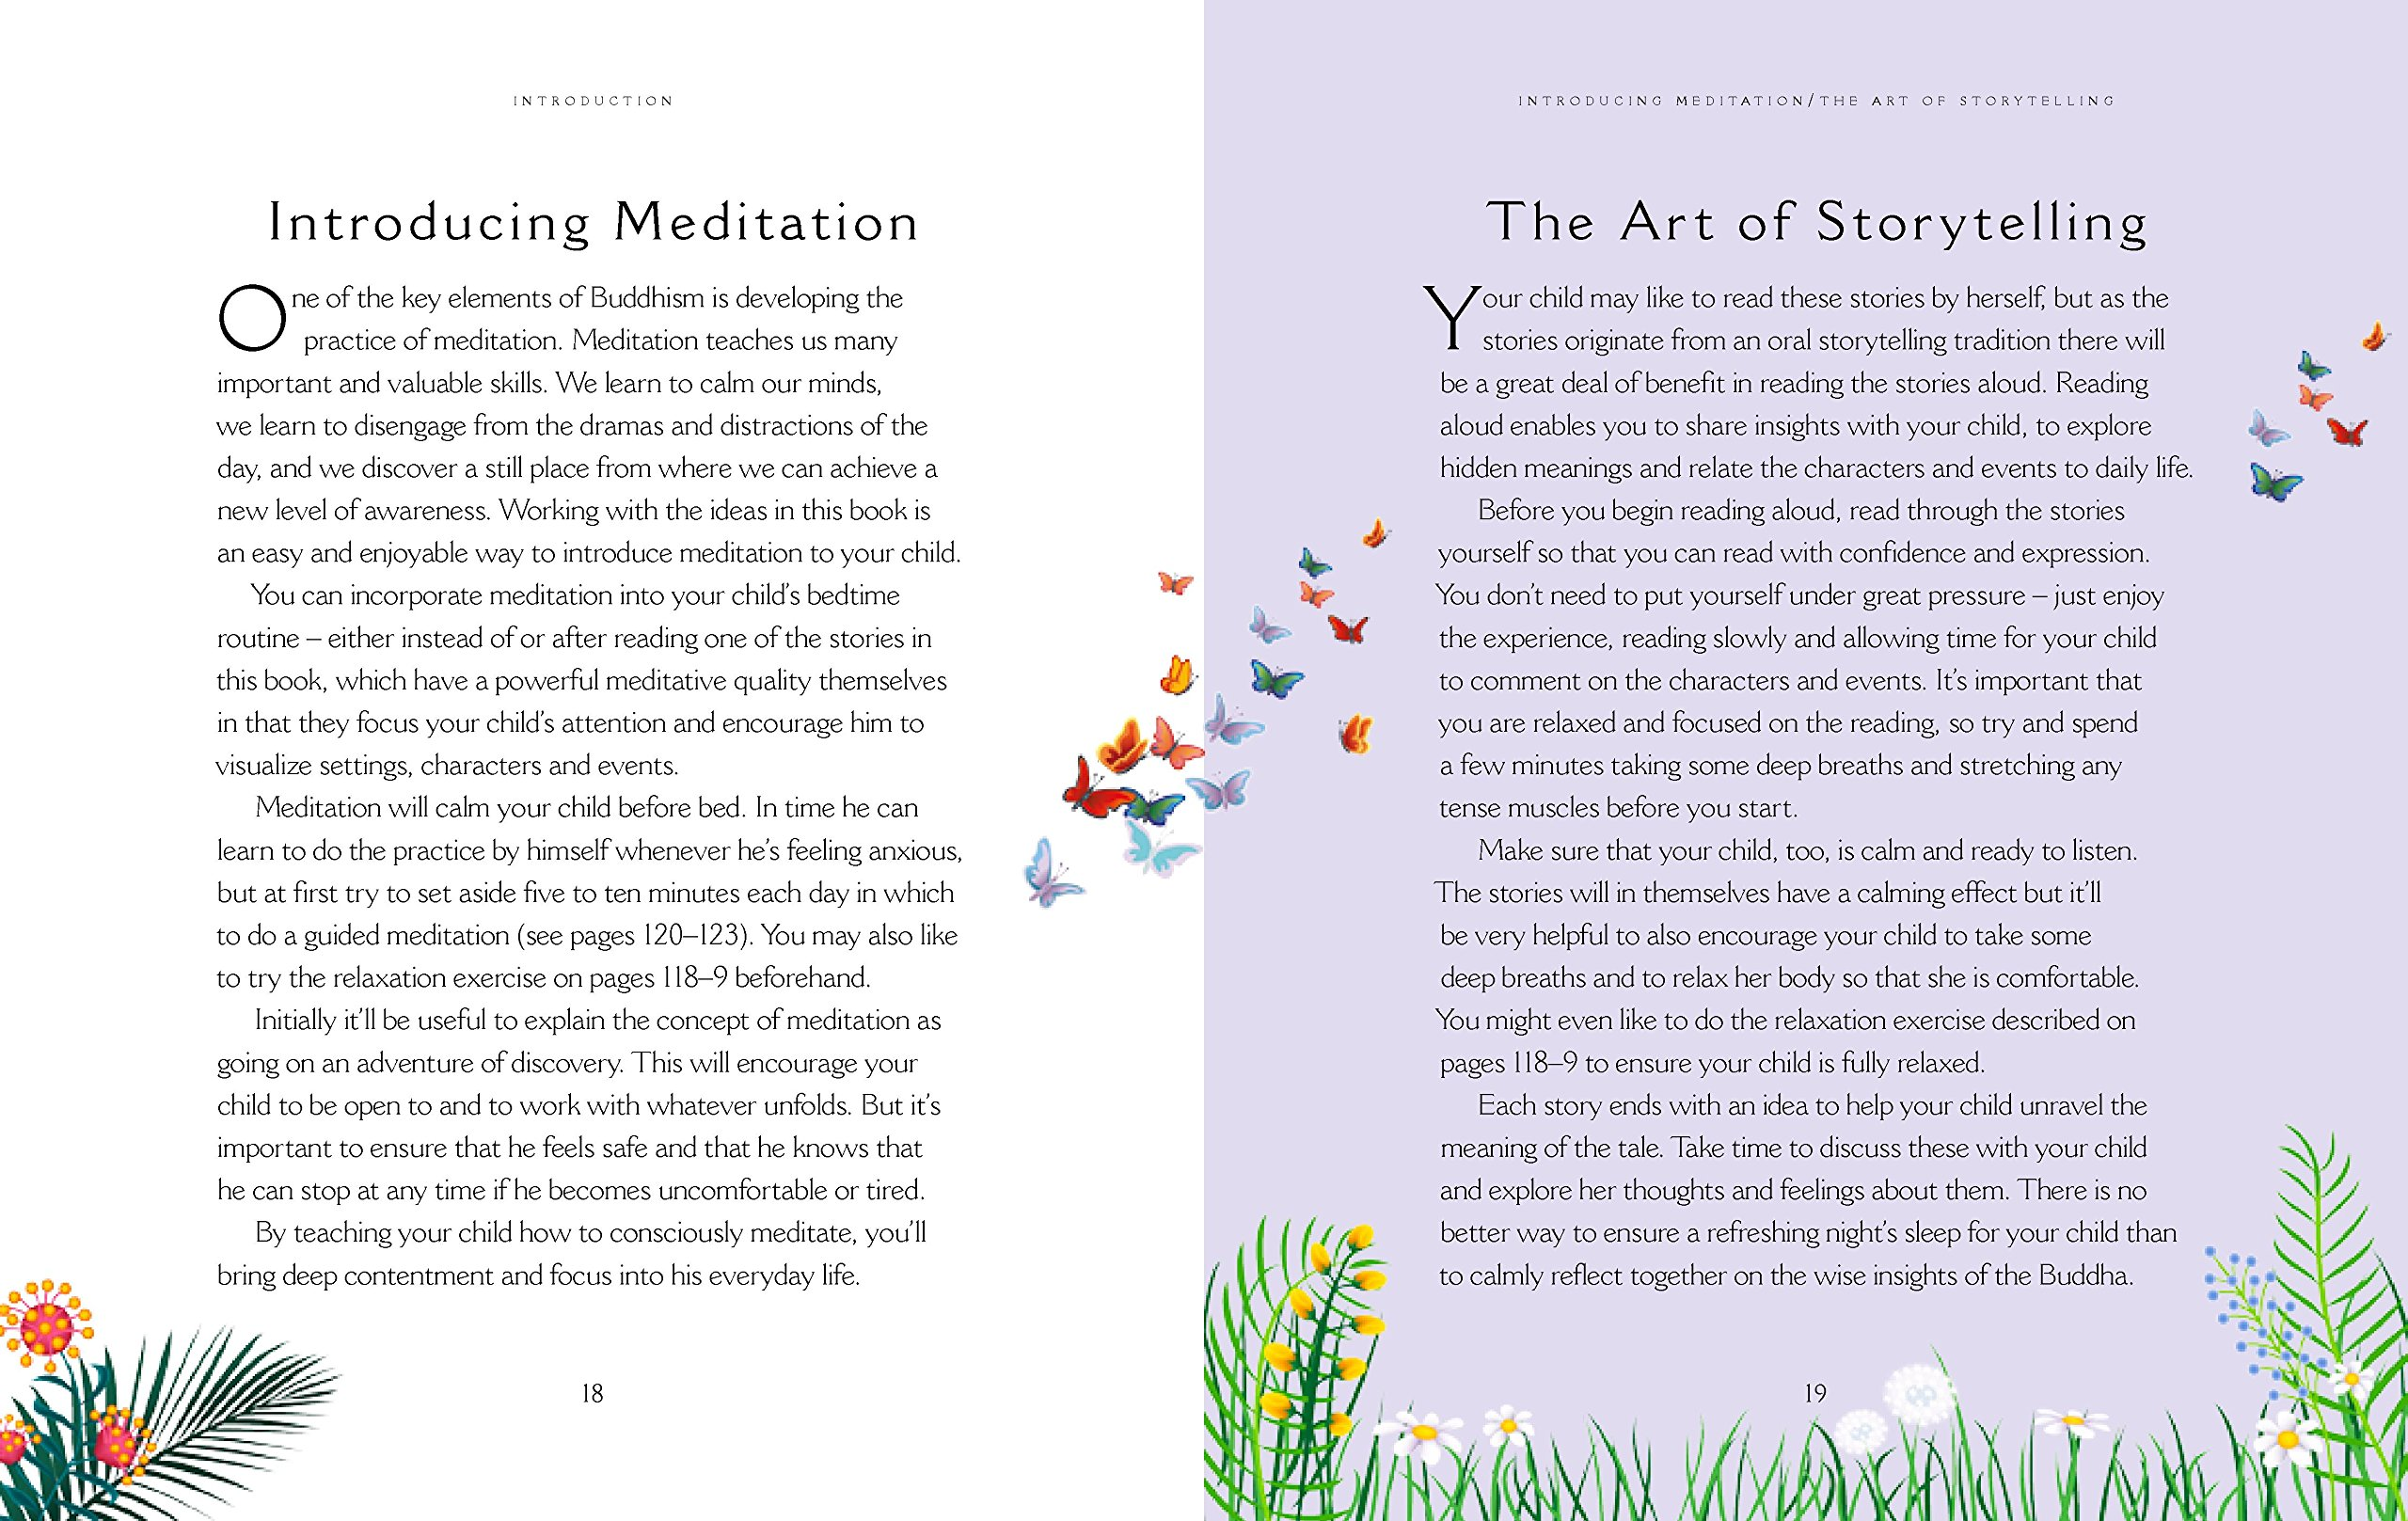 more nightlights stories for you to read to your child to encourage calm confidence and creativity